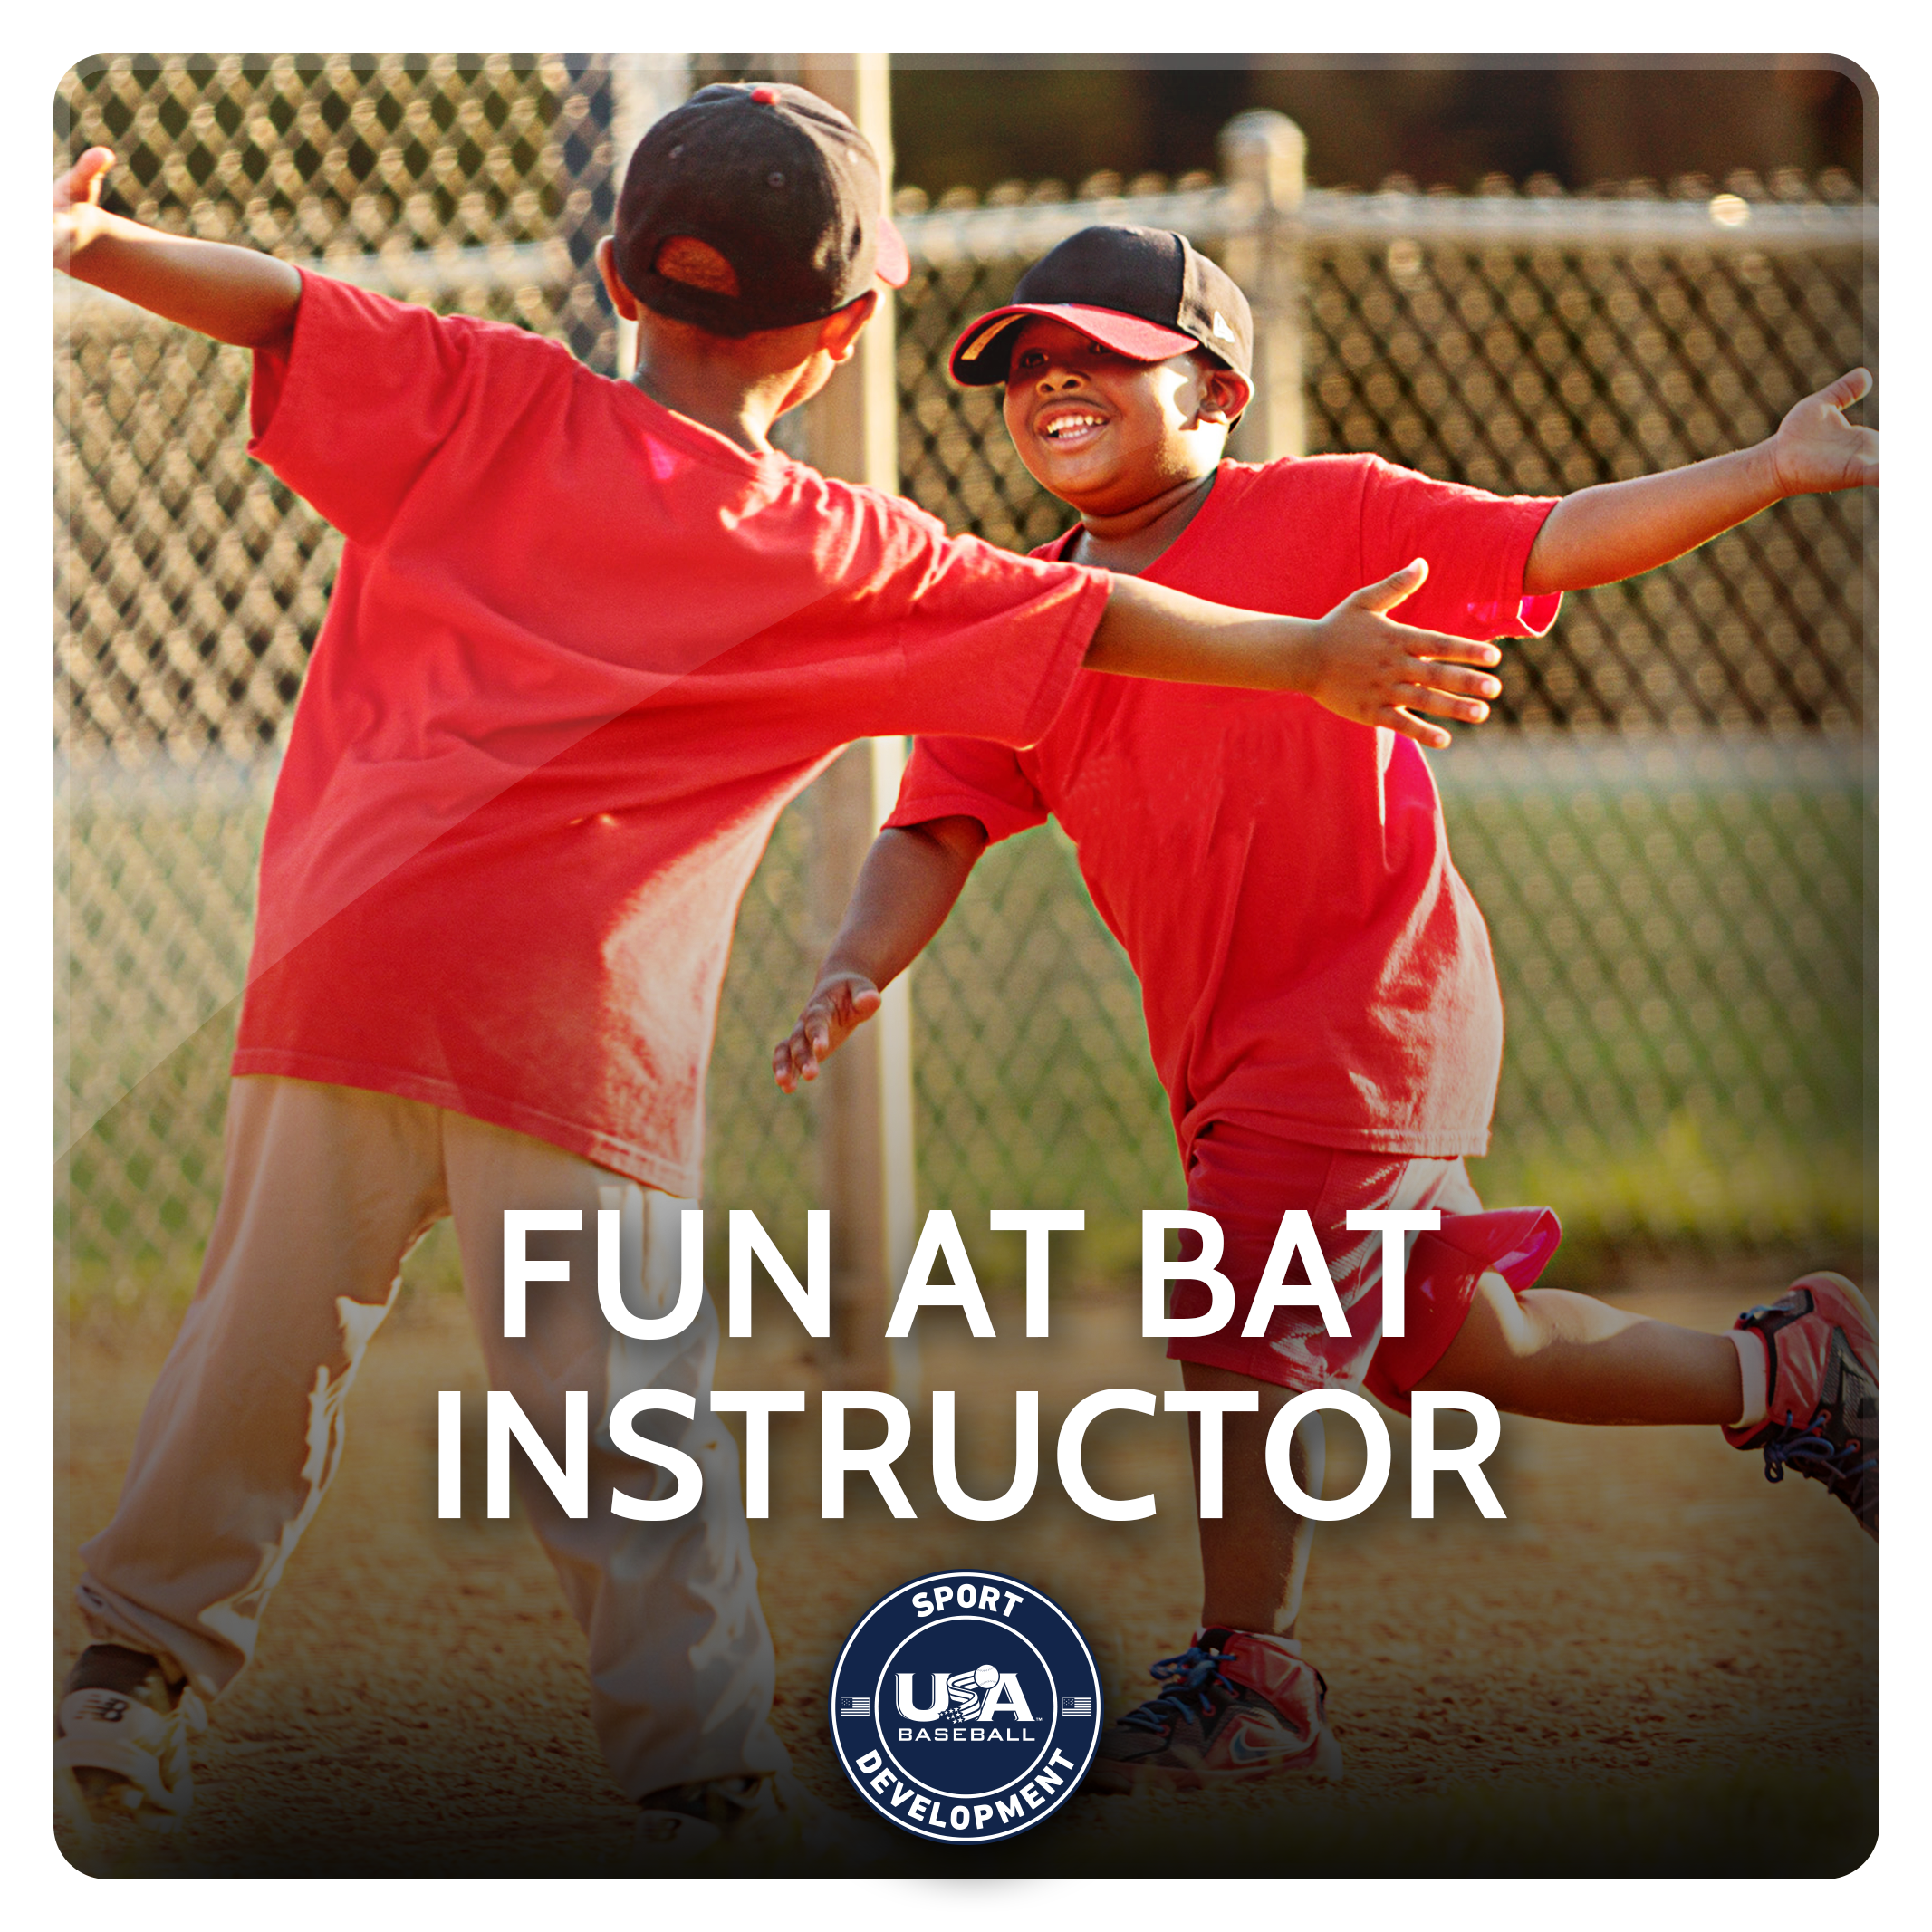 Fun At Bat Instructor